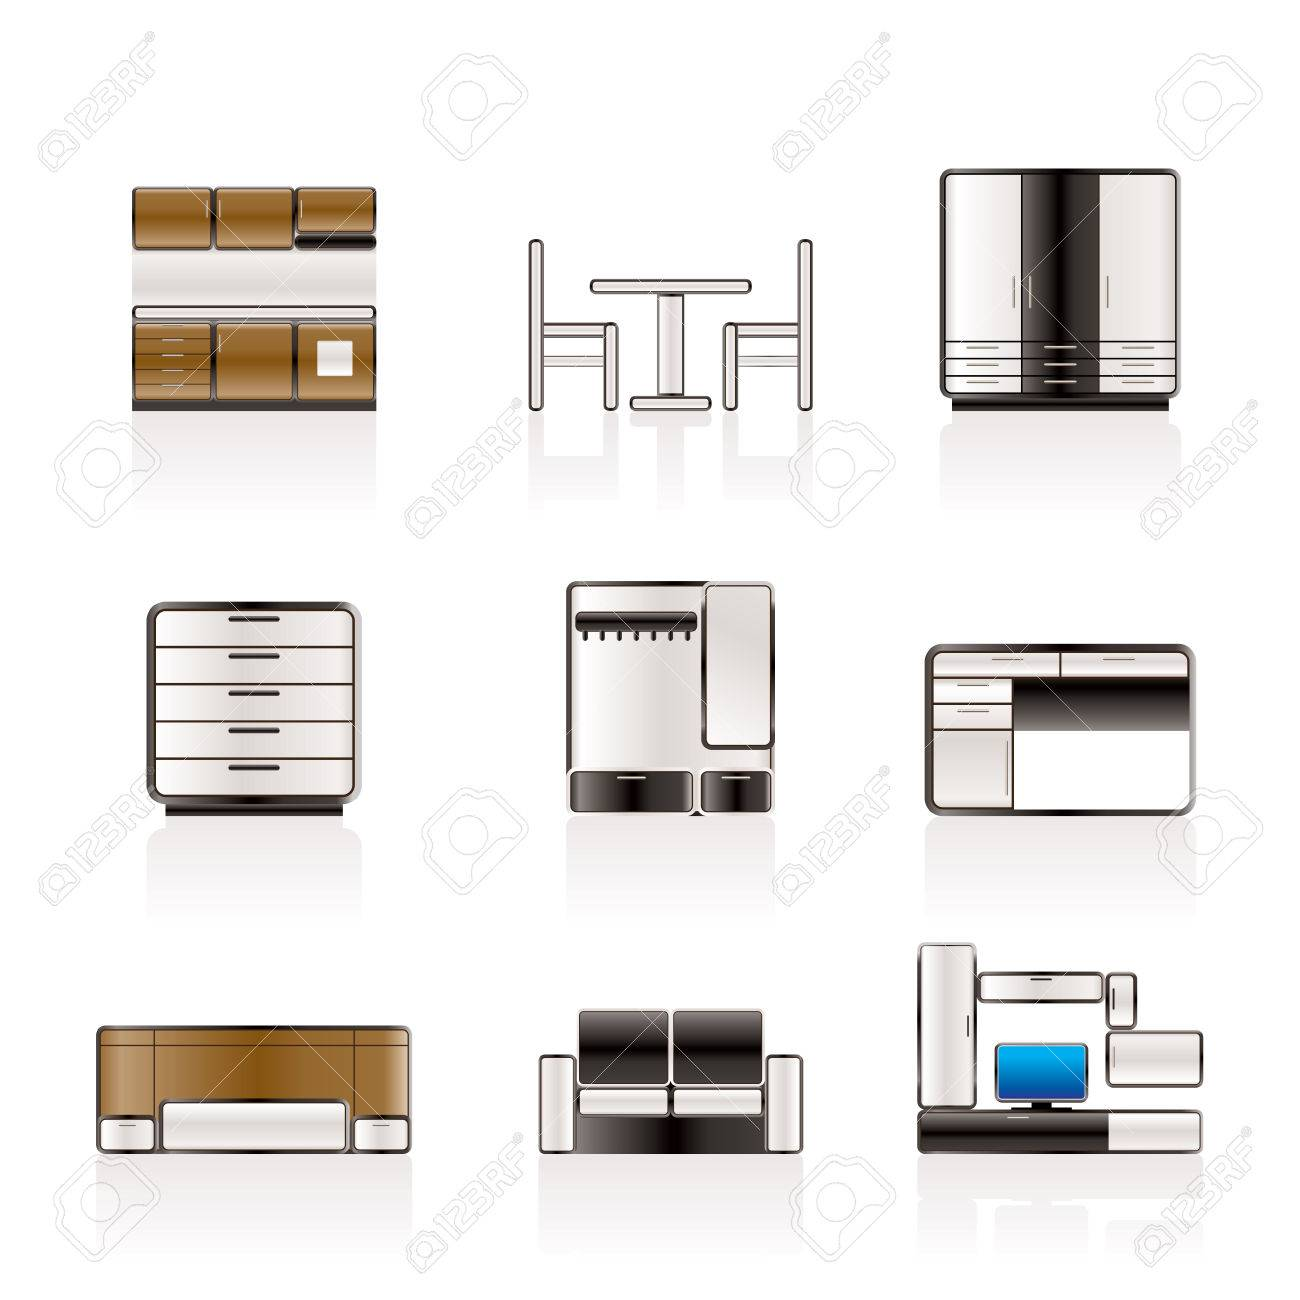 3 008 kitchen cabinet stock vector illustration and royalty free